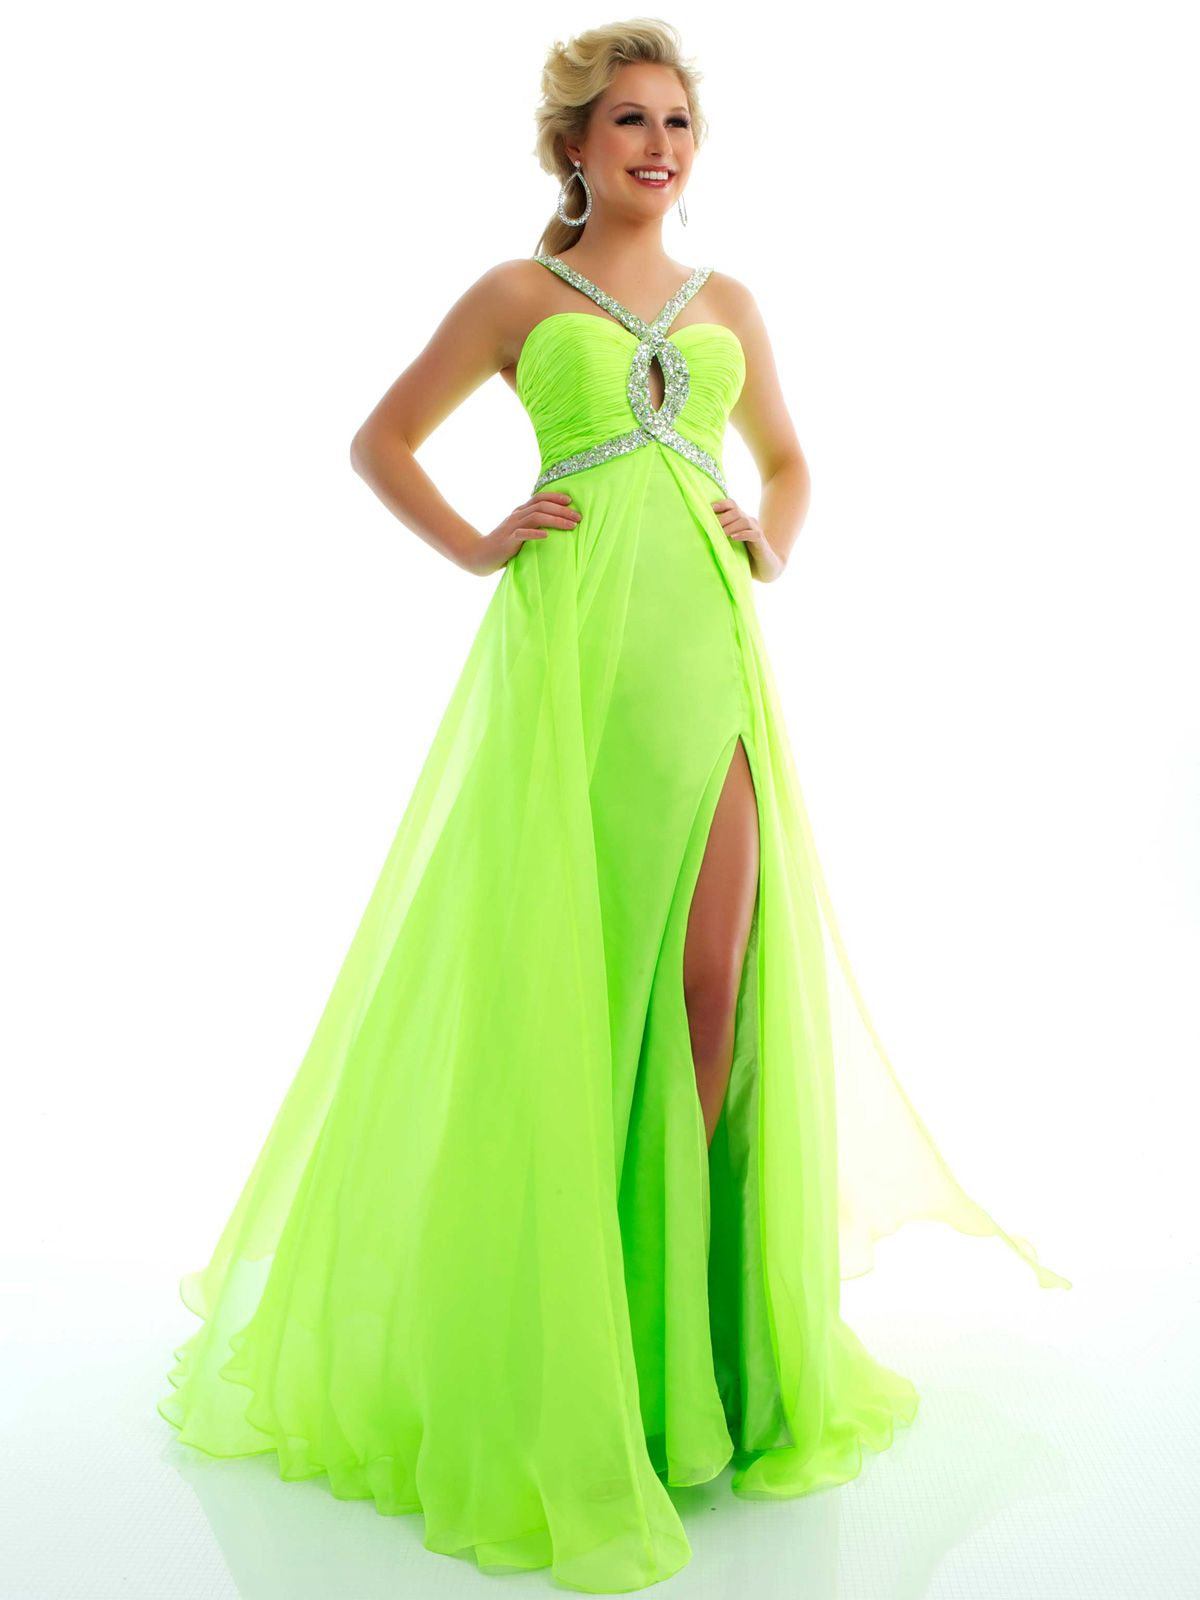 Dress displays a beaded vneck strap ruched bust with beaded